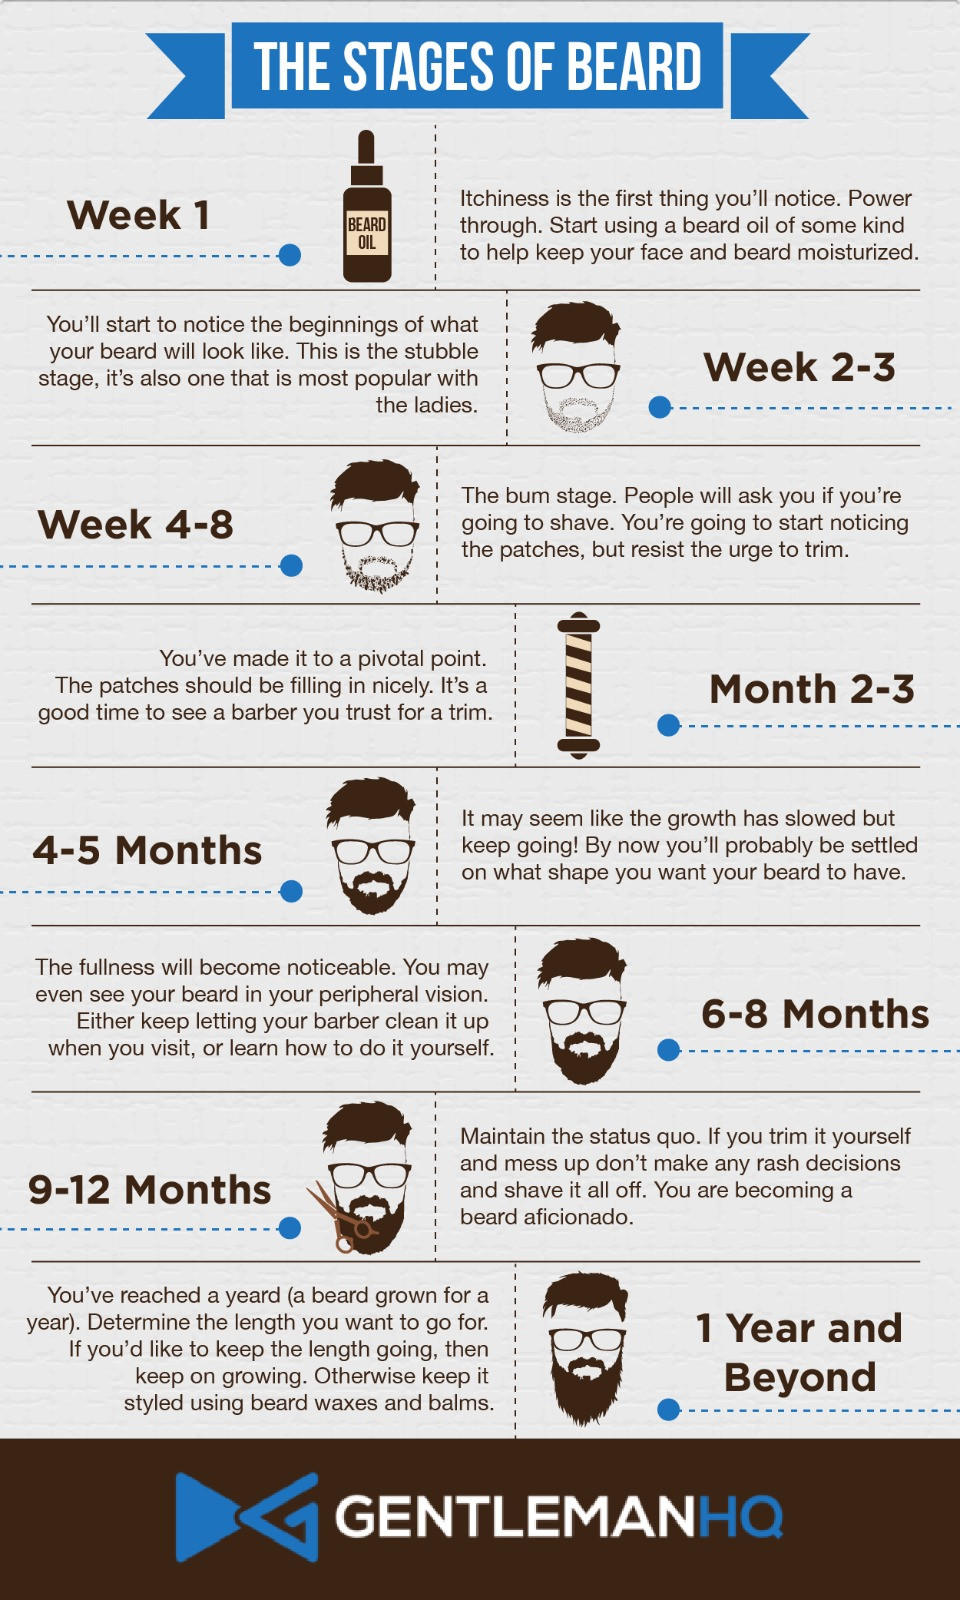 The Stages of Beard - GentlemanHQ